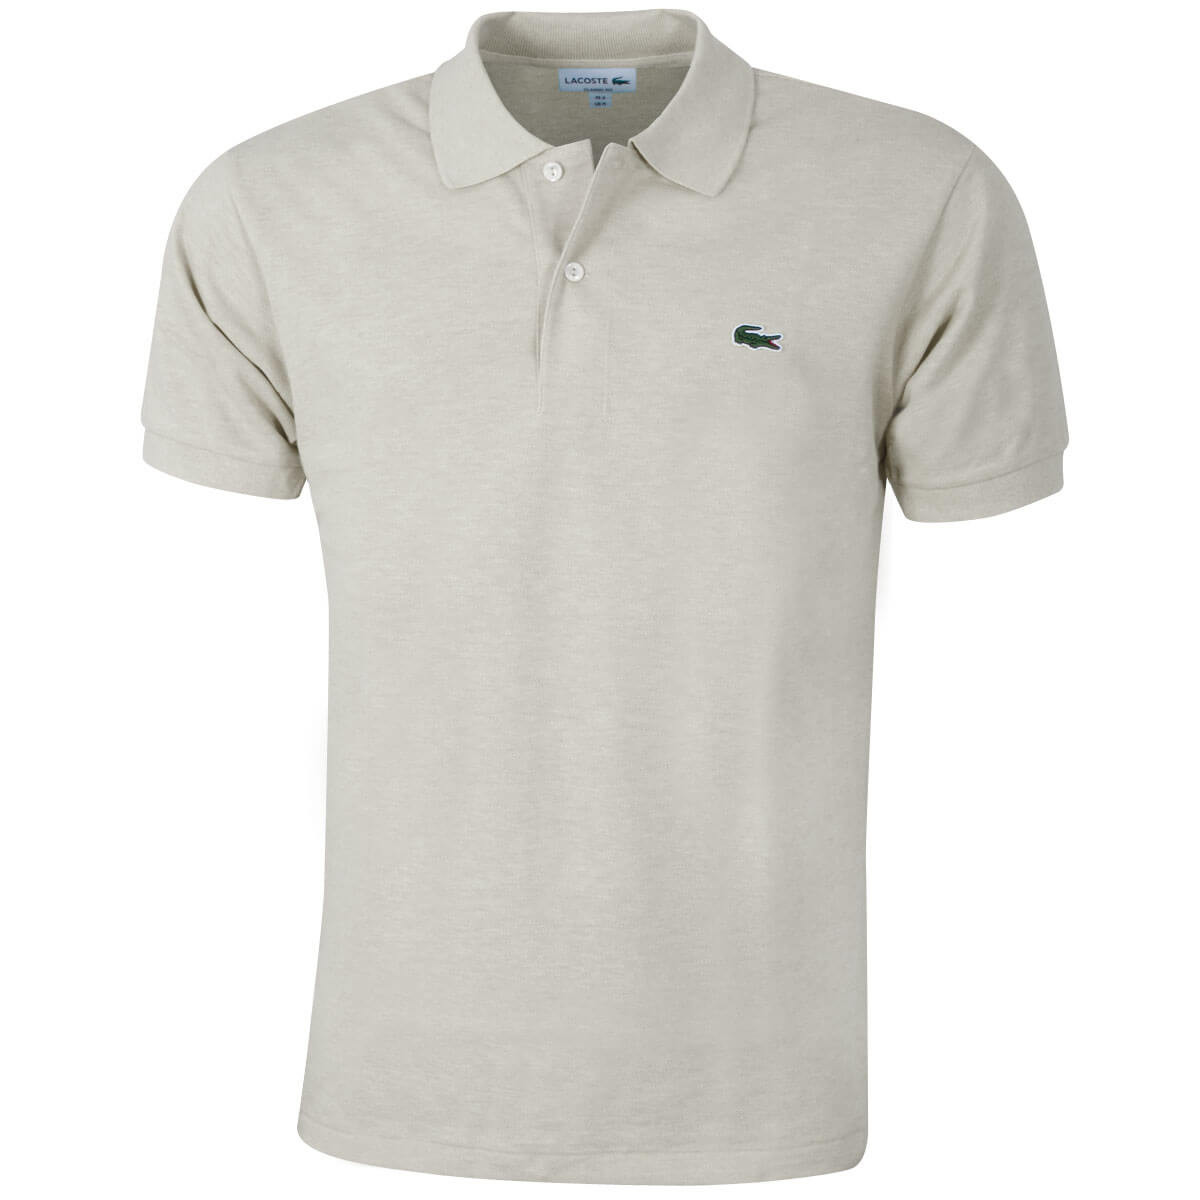 Lacoste L1264 Polo T-Shirt Ipomee Chine